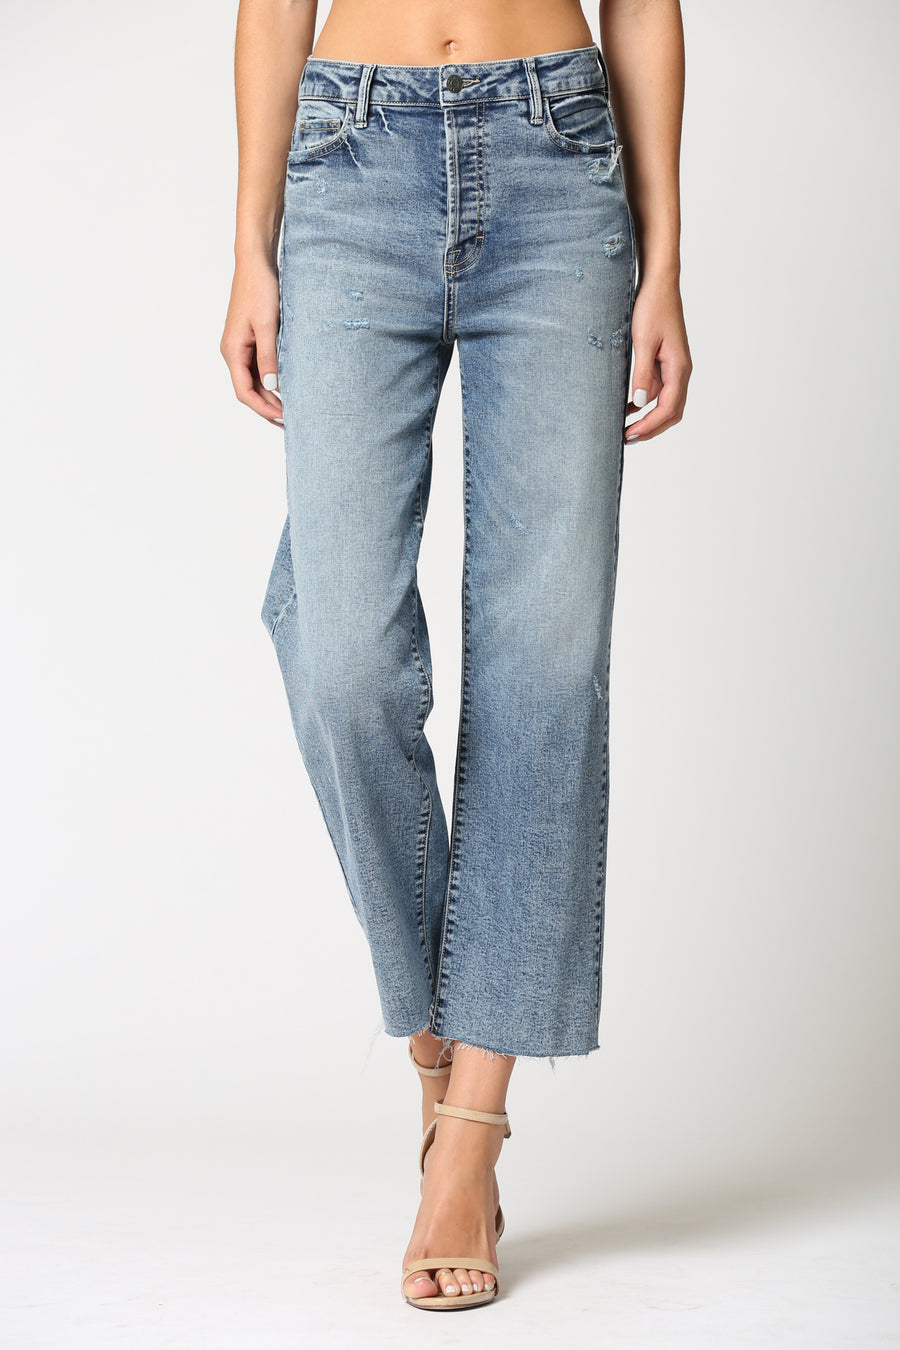 TRACEY <p/> MEDIUM WASH RAW HEM WITH STRETCH